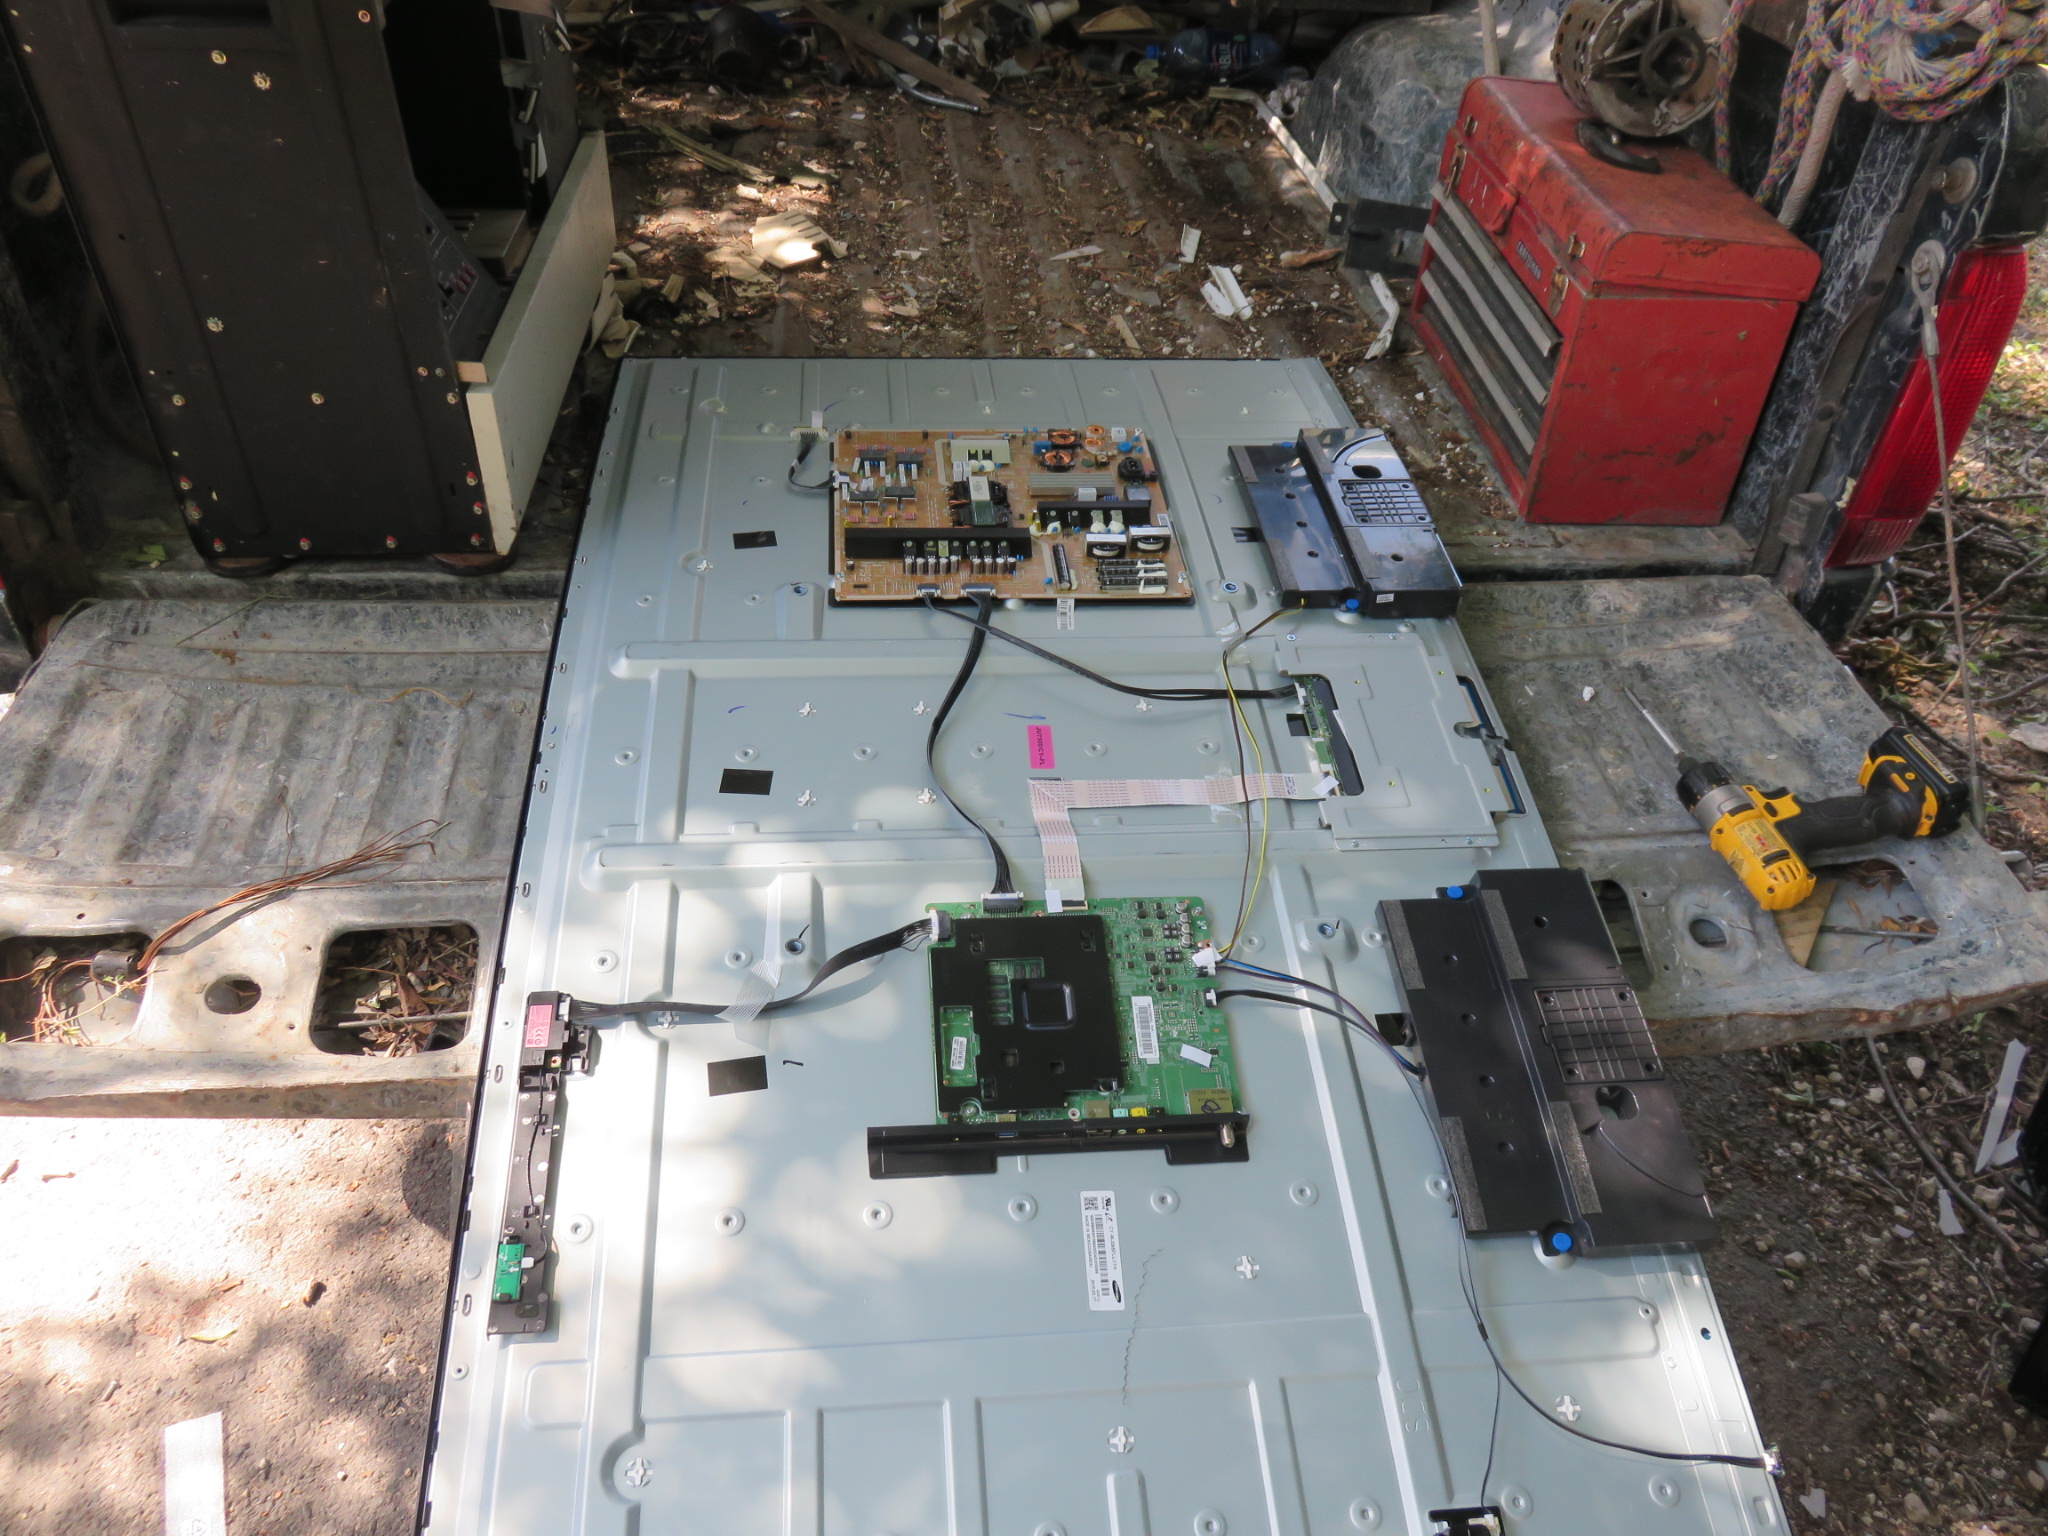 Broken Led Lcd Plasma Tv Screen Recycling Recycledcircuitboardlamp Curved Has 3 Circuit Boards We Can Use